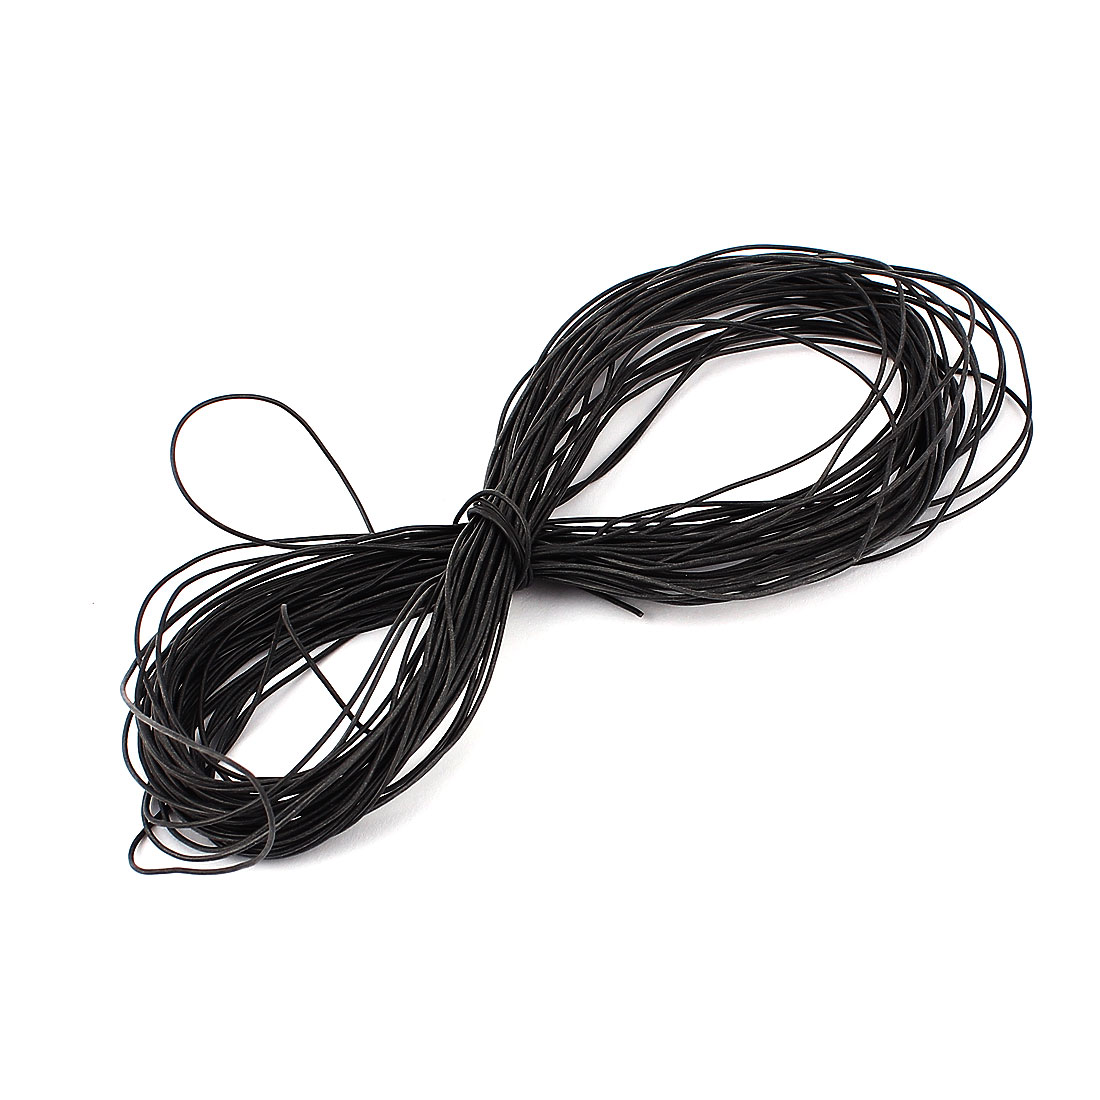 15M 30AWG Electric Copper Core Flexible Silicone Wire Cable Black